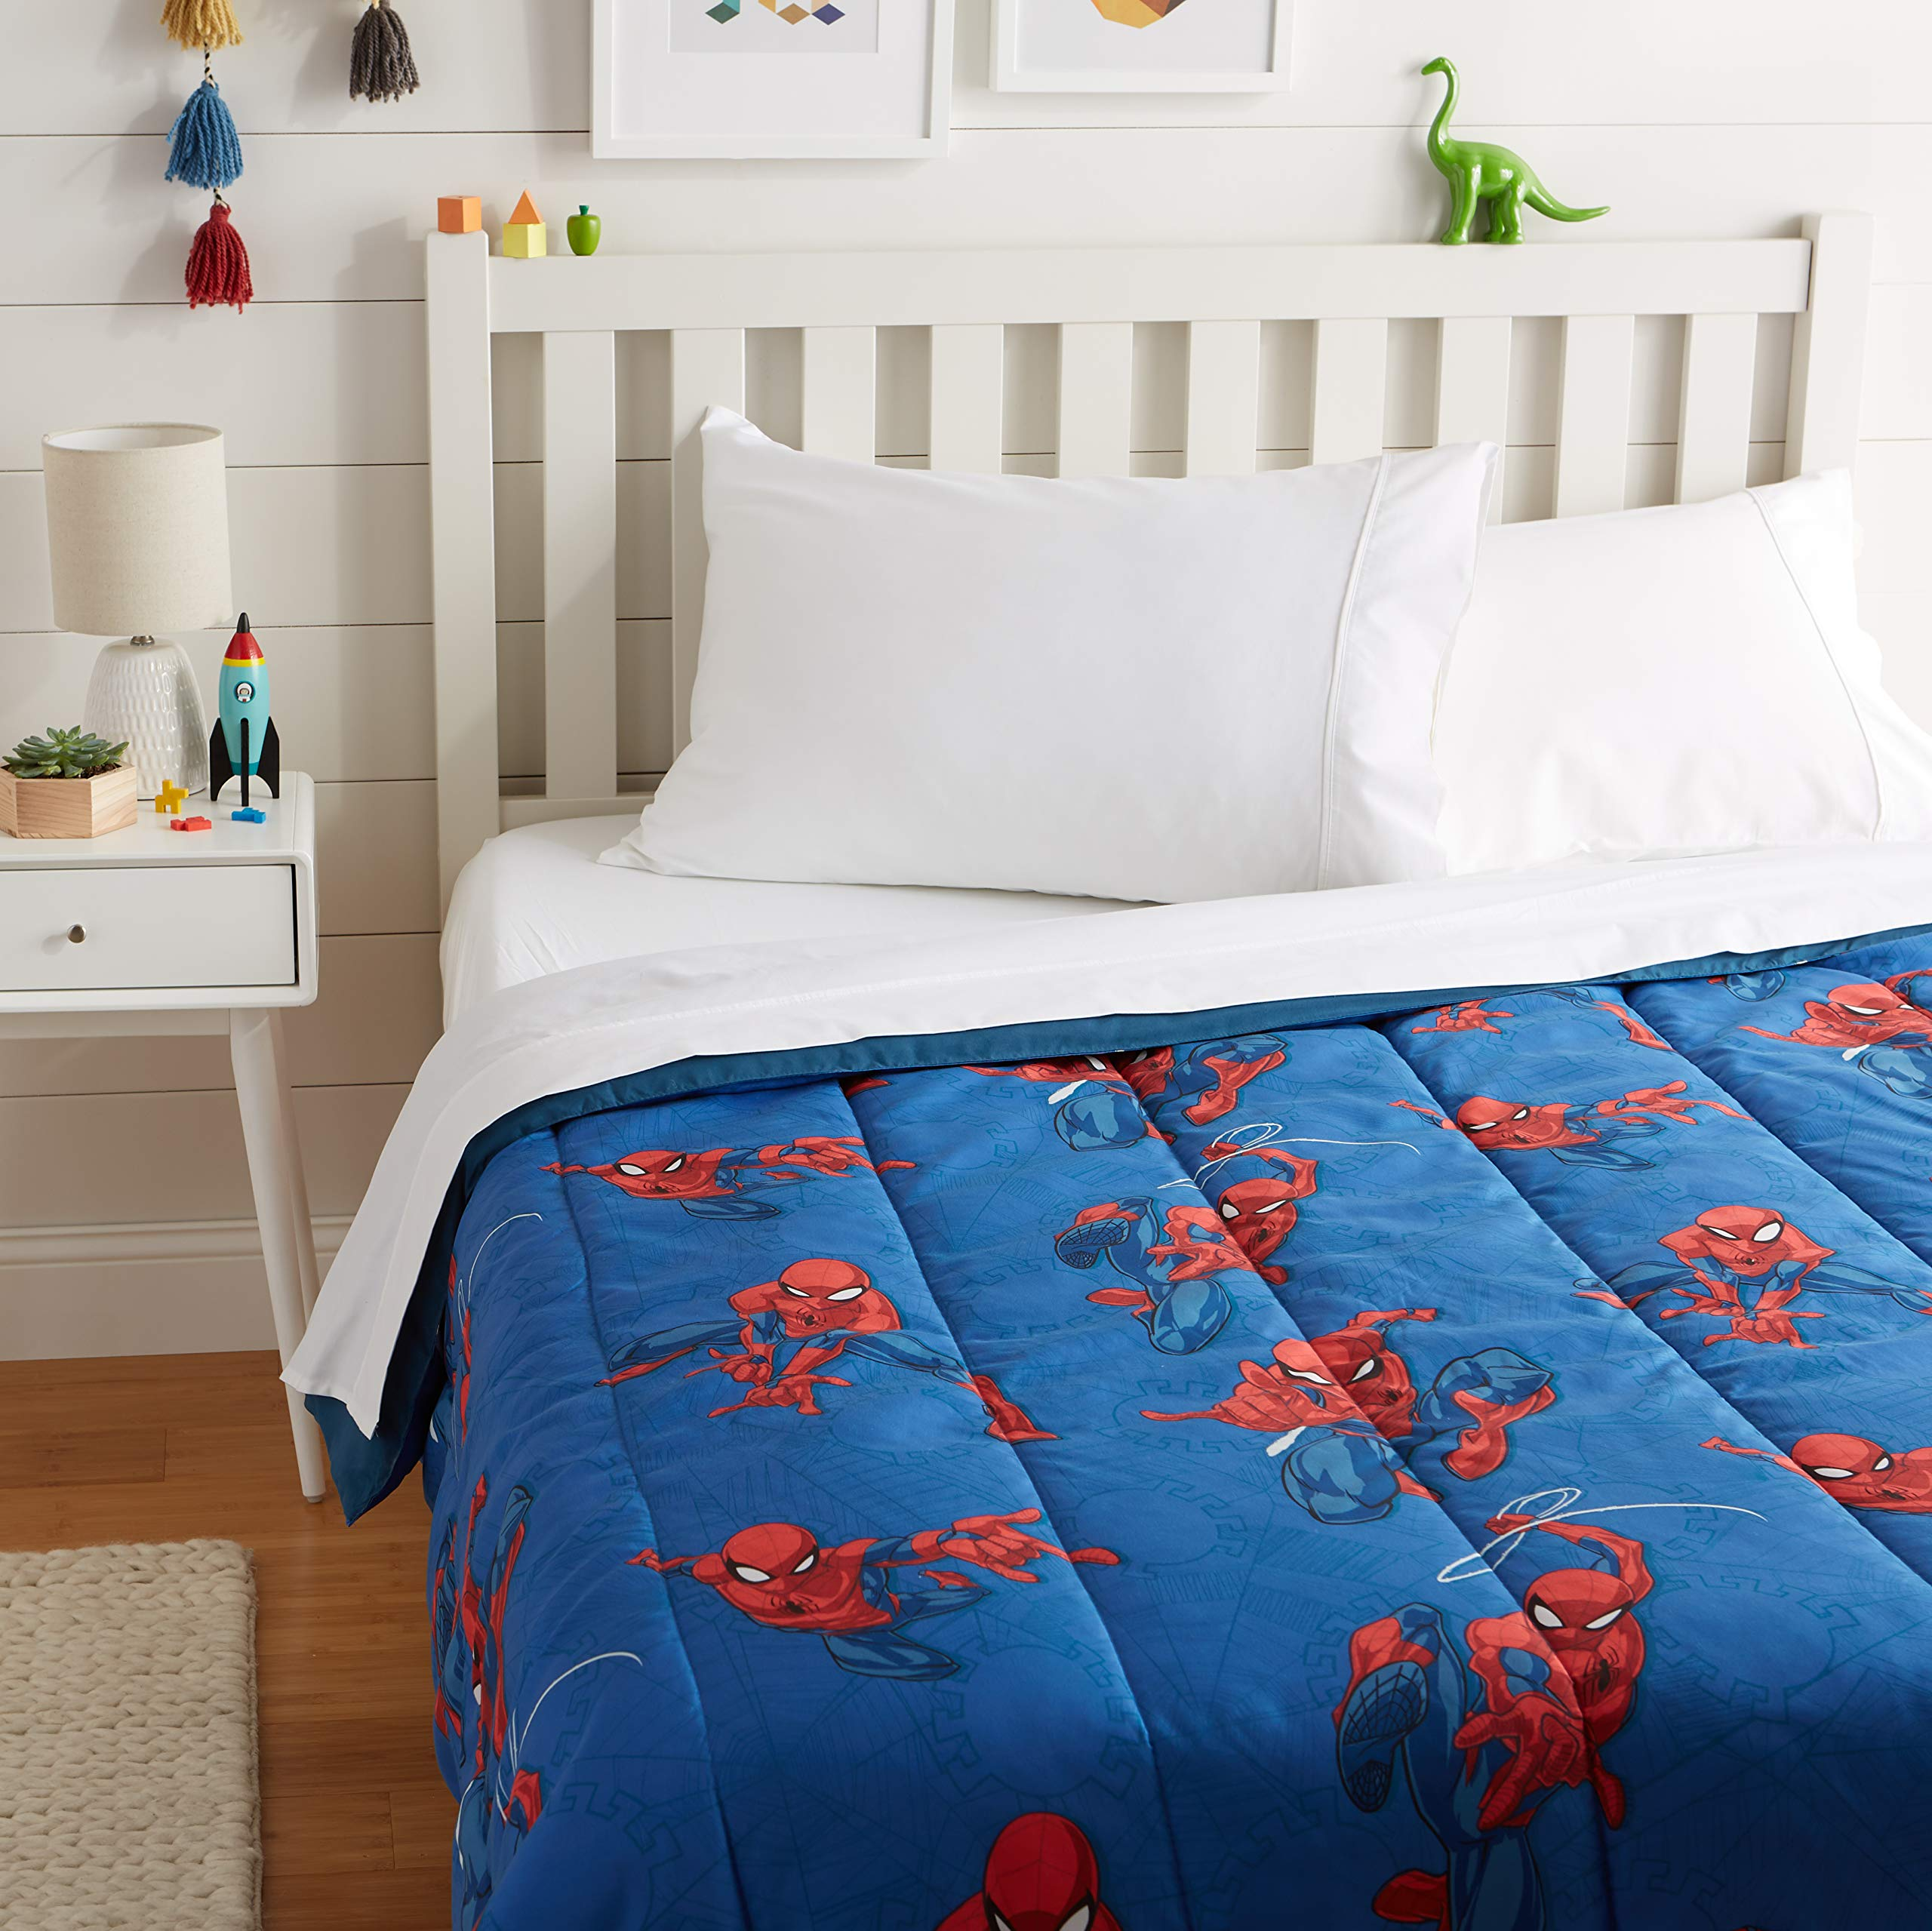 AmazonBasics by Marvel Spiderman Spidey Crawl Comforter, Full by AmazonBasics